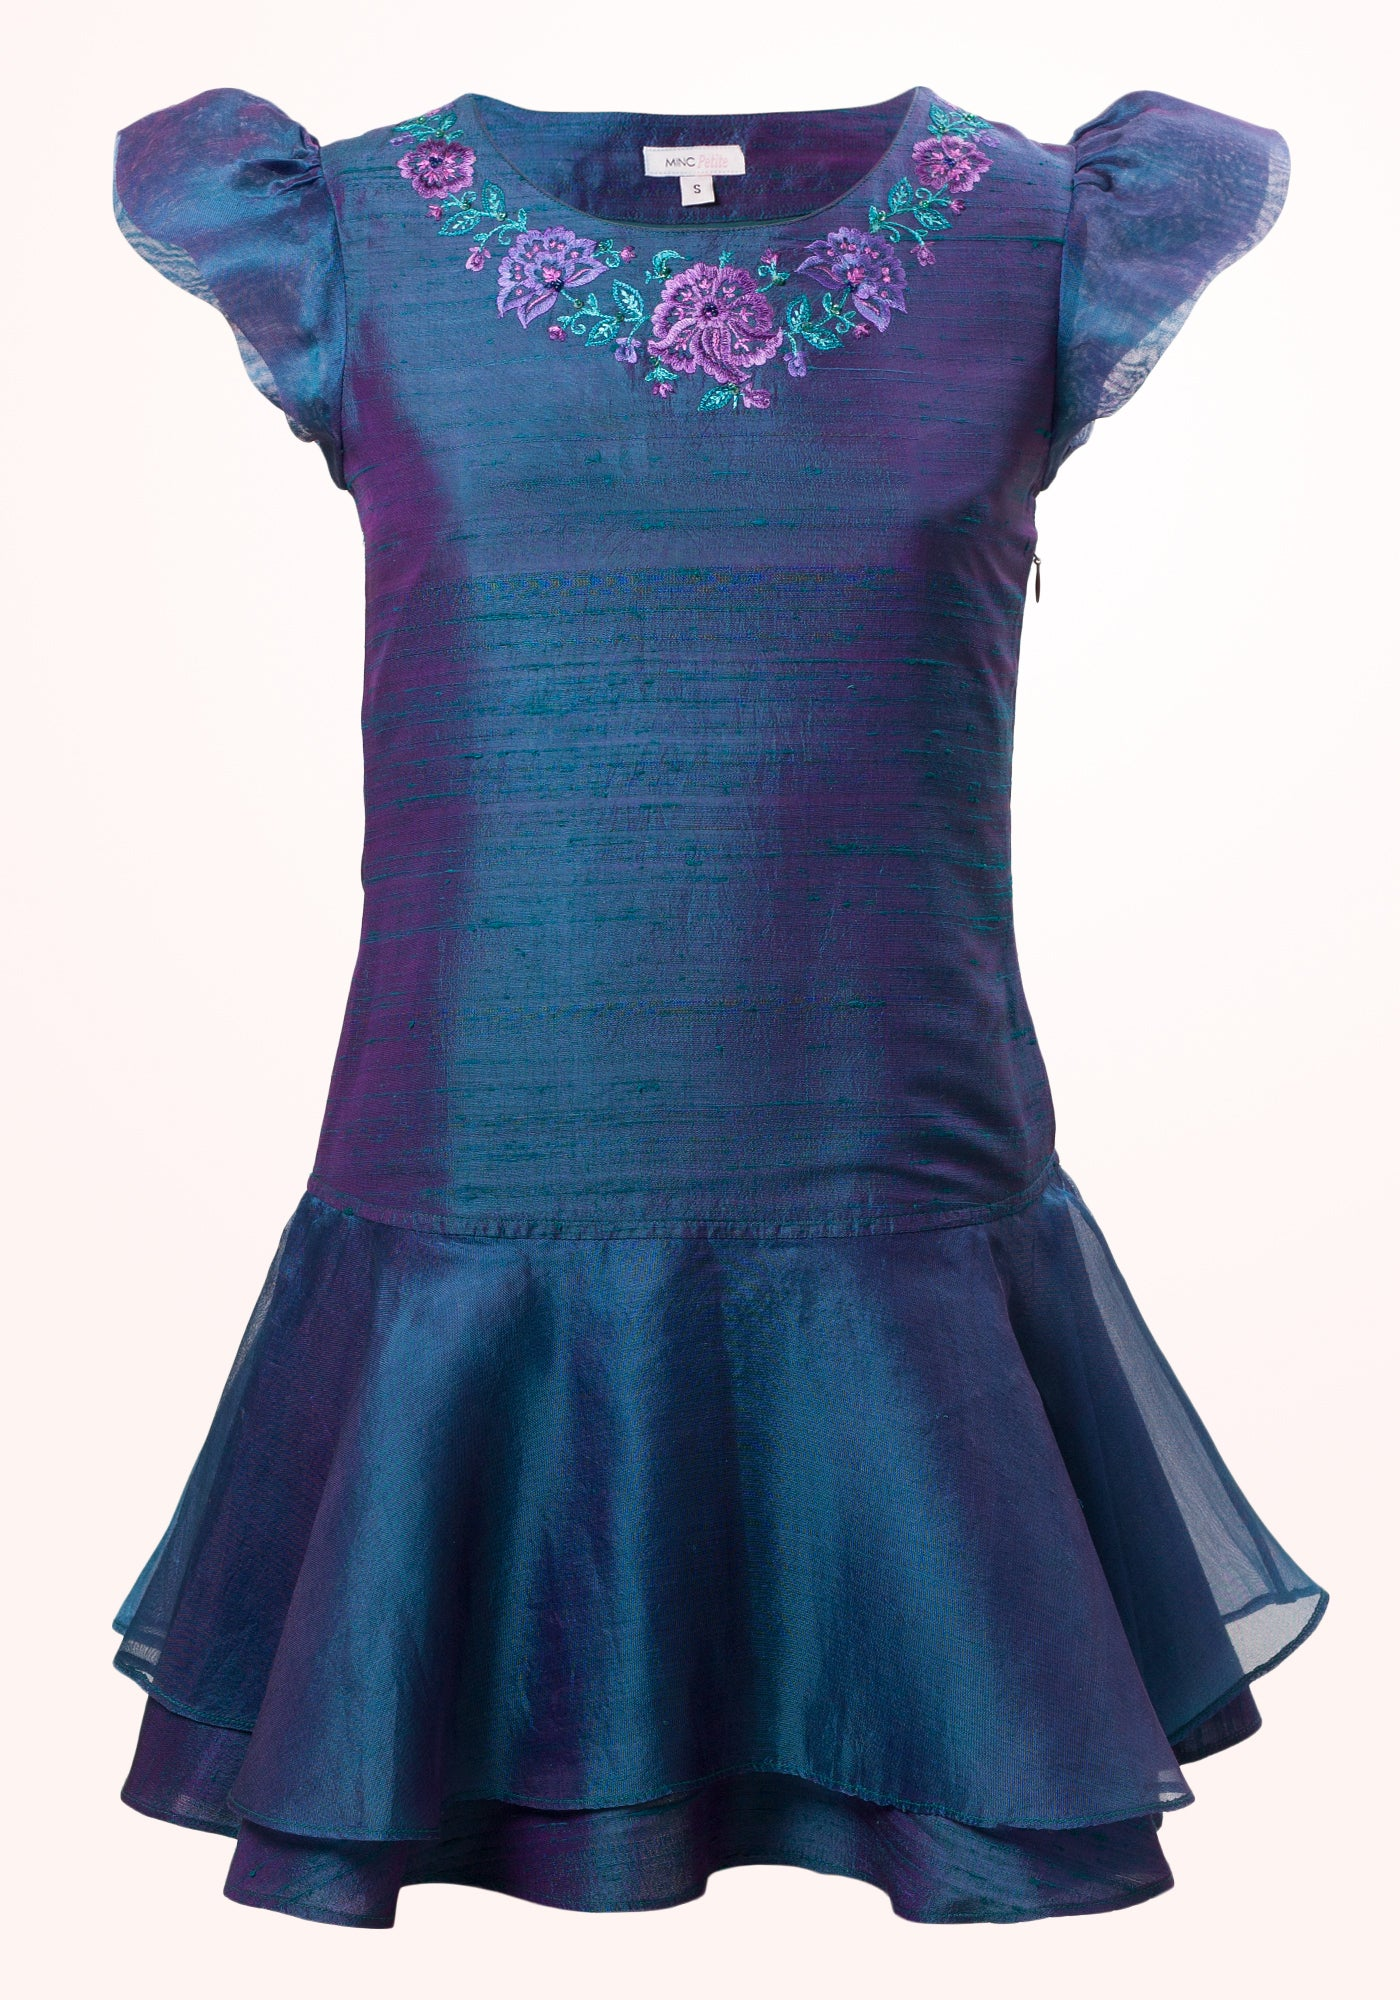 Peacock Blue Girls Dress in Embroidered Silk - MINC ecofashion